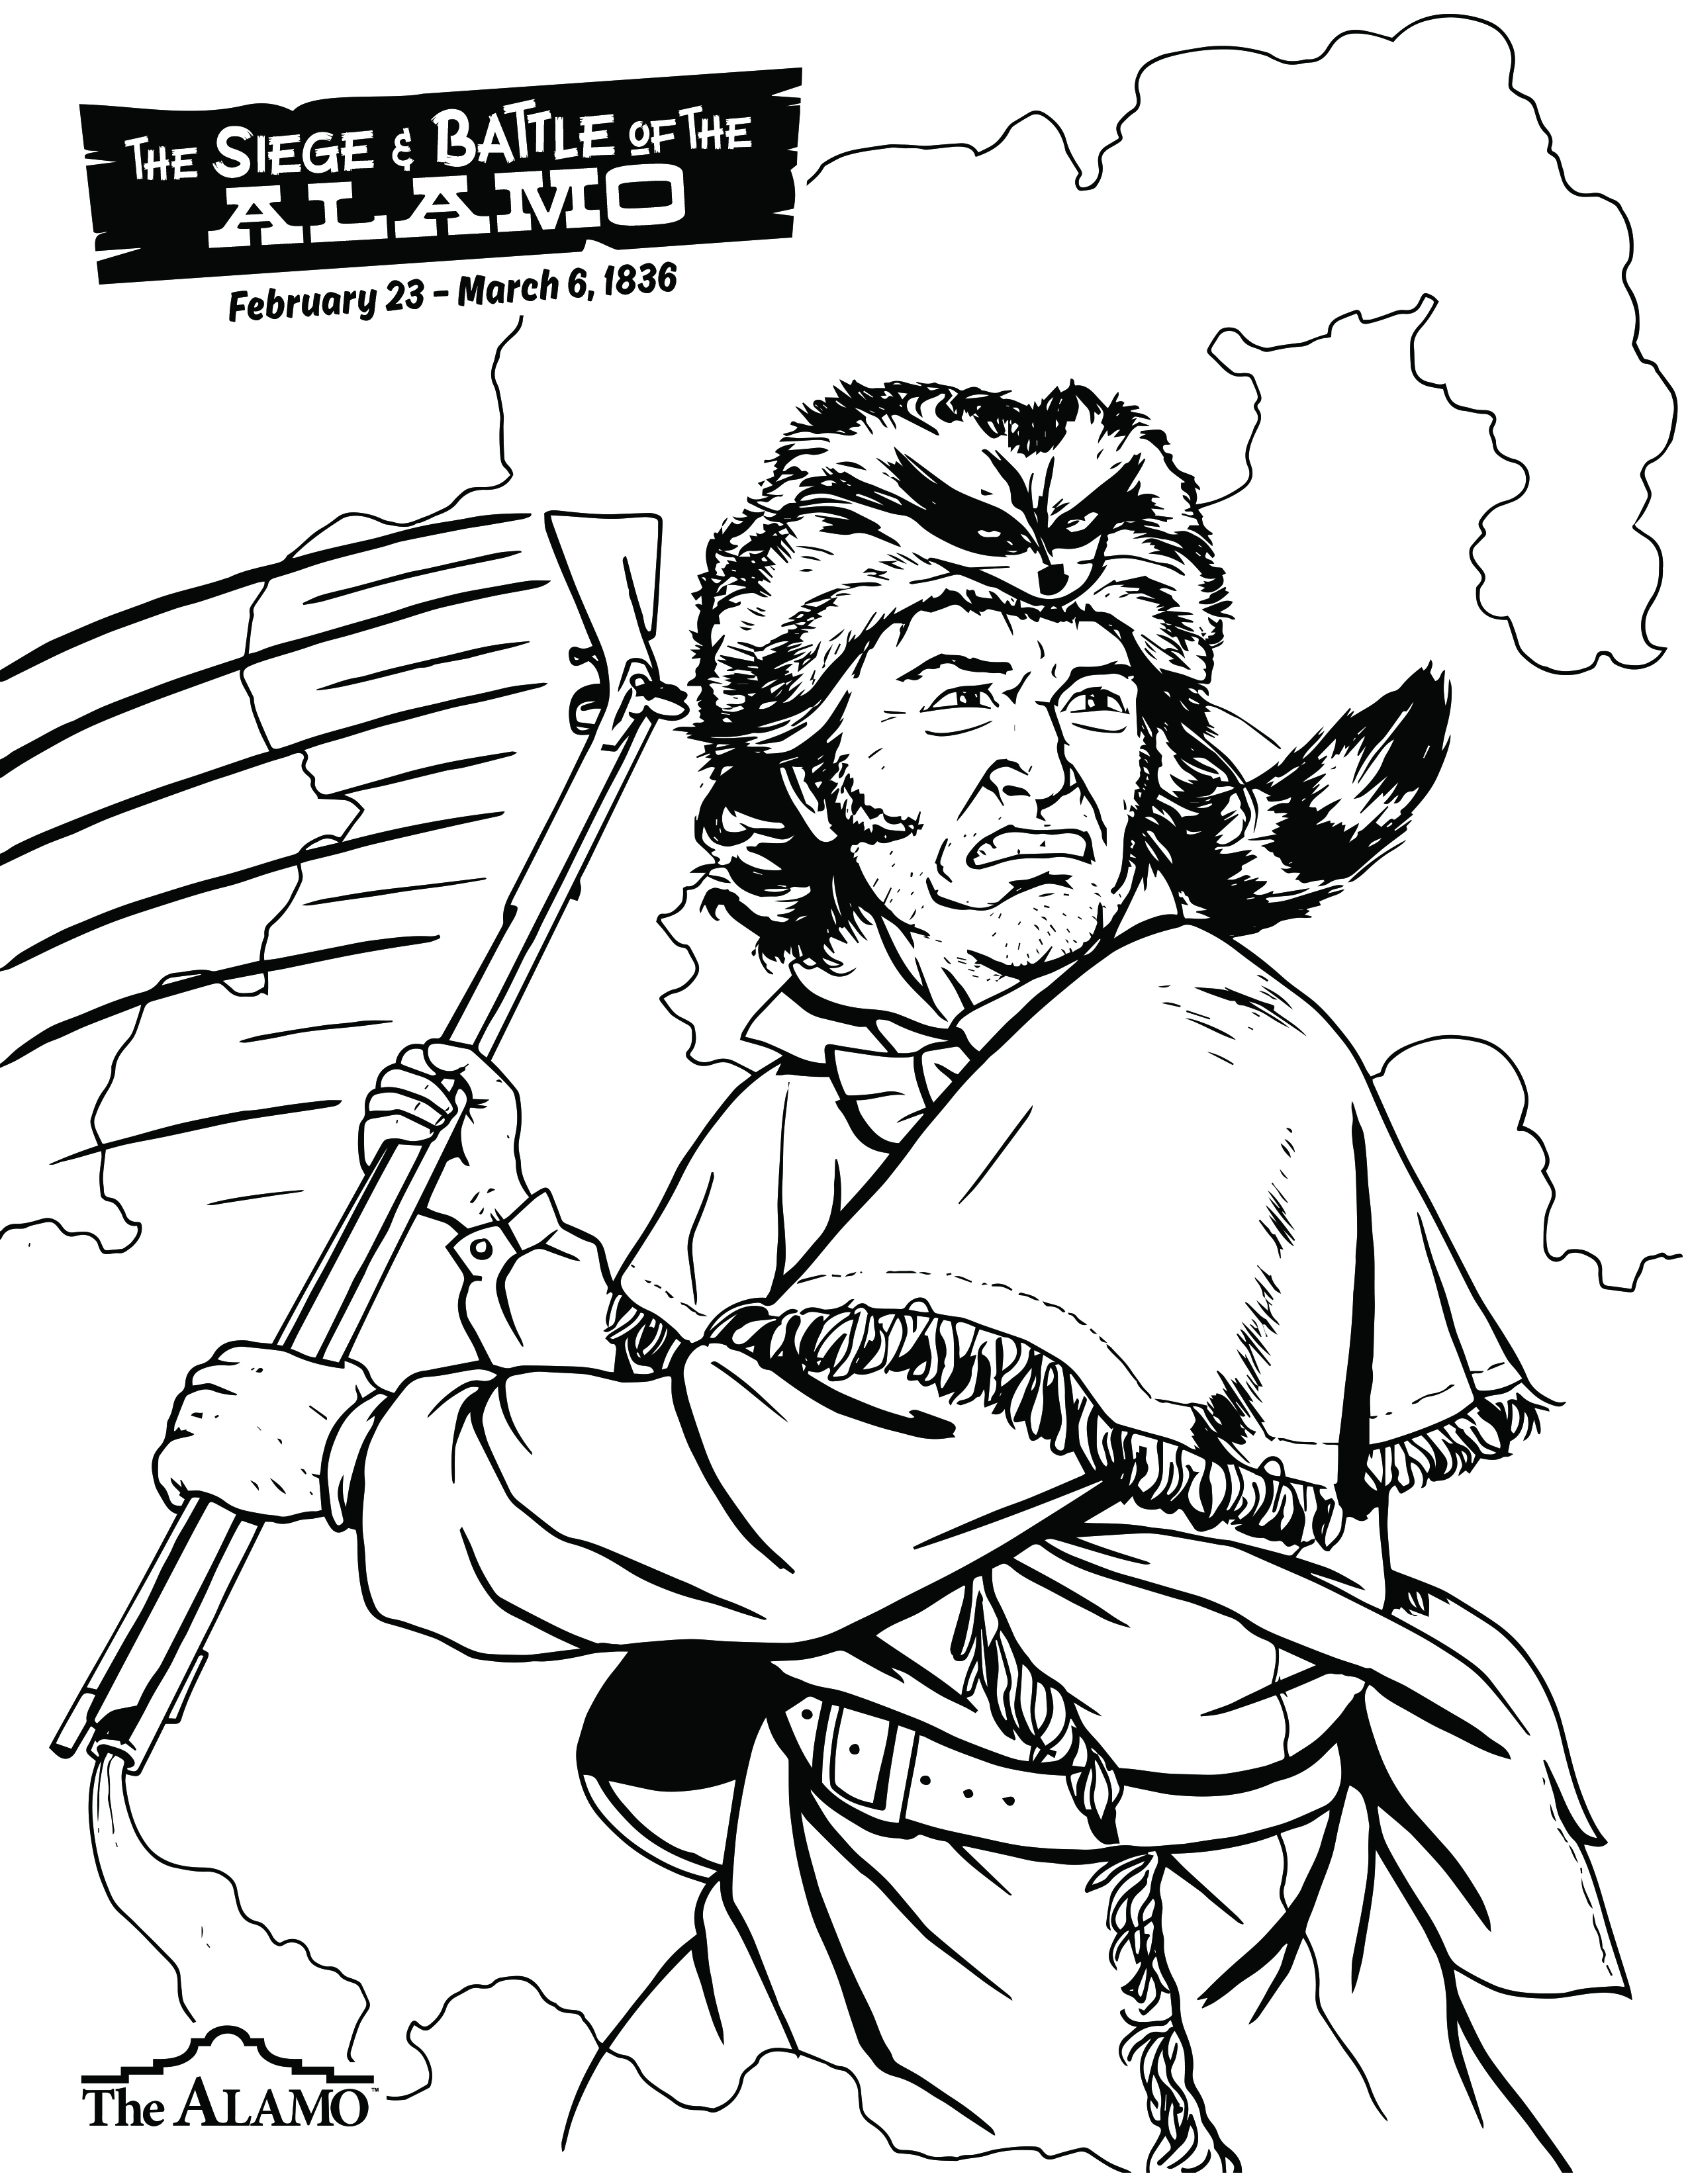 Santa Anna Coloring Page With Alamo Sheets For Children